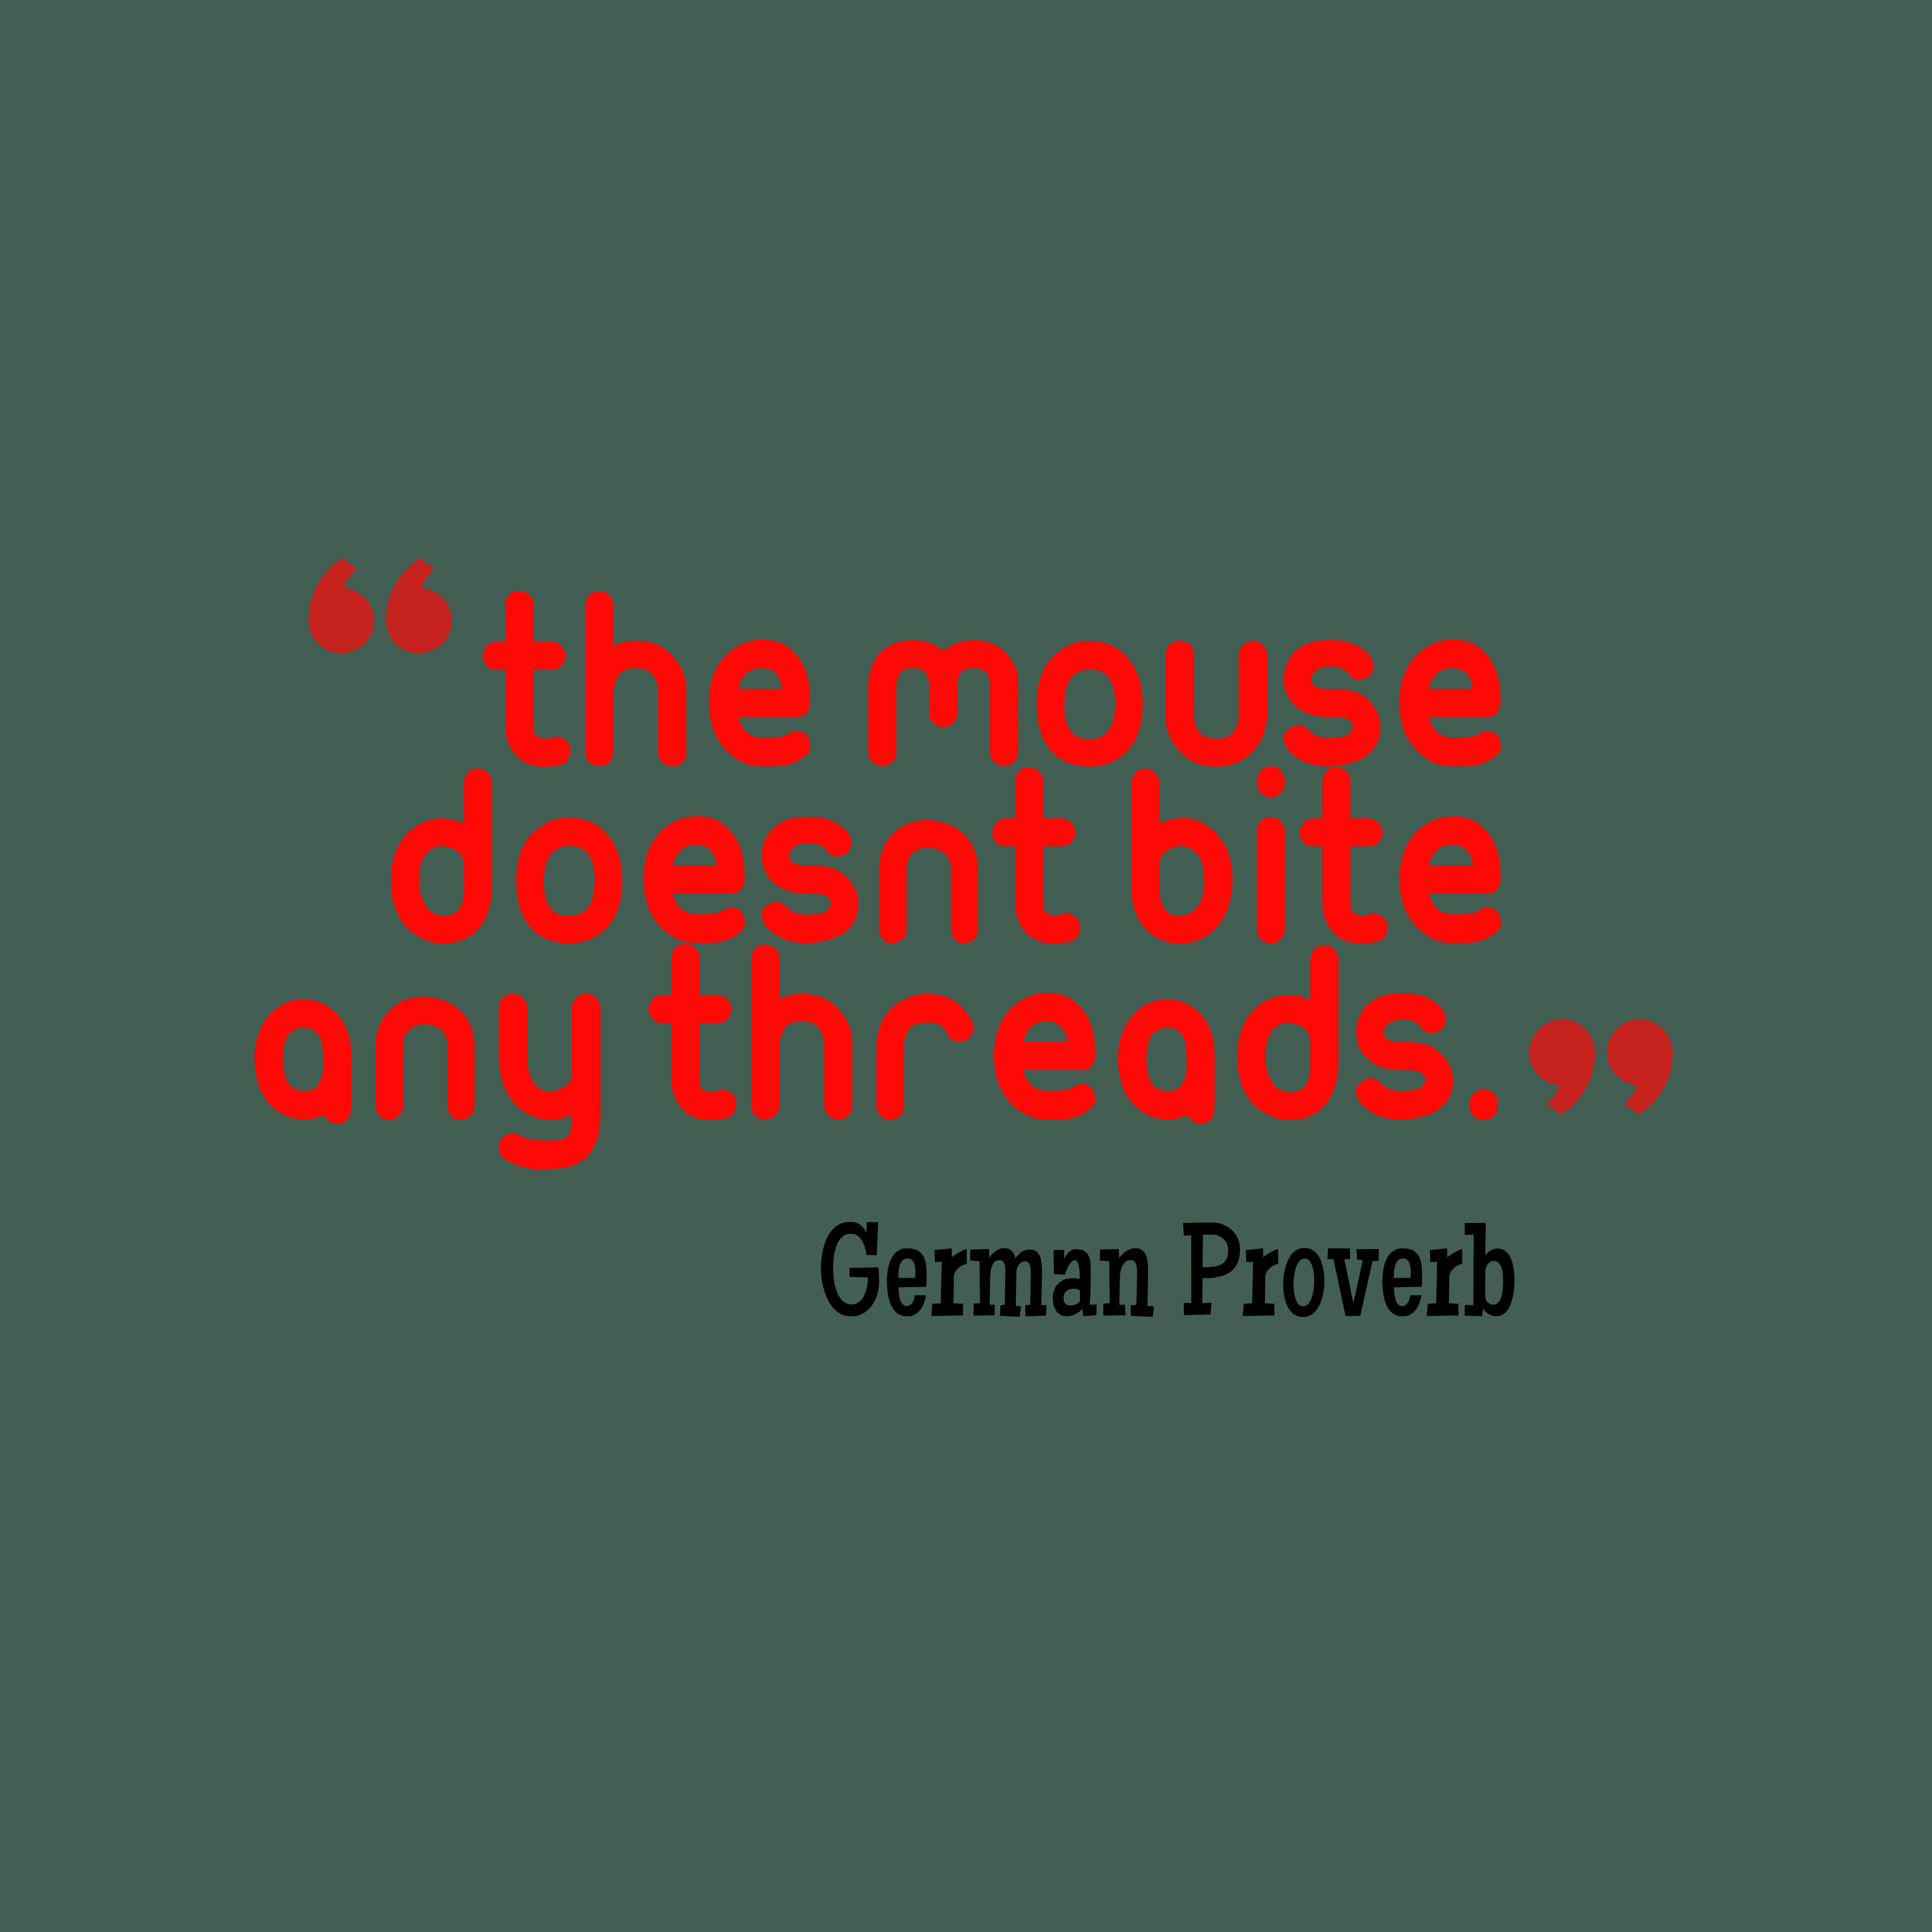 Quotes image of The mouse doesn't bite any threads.